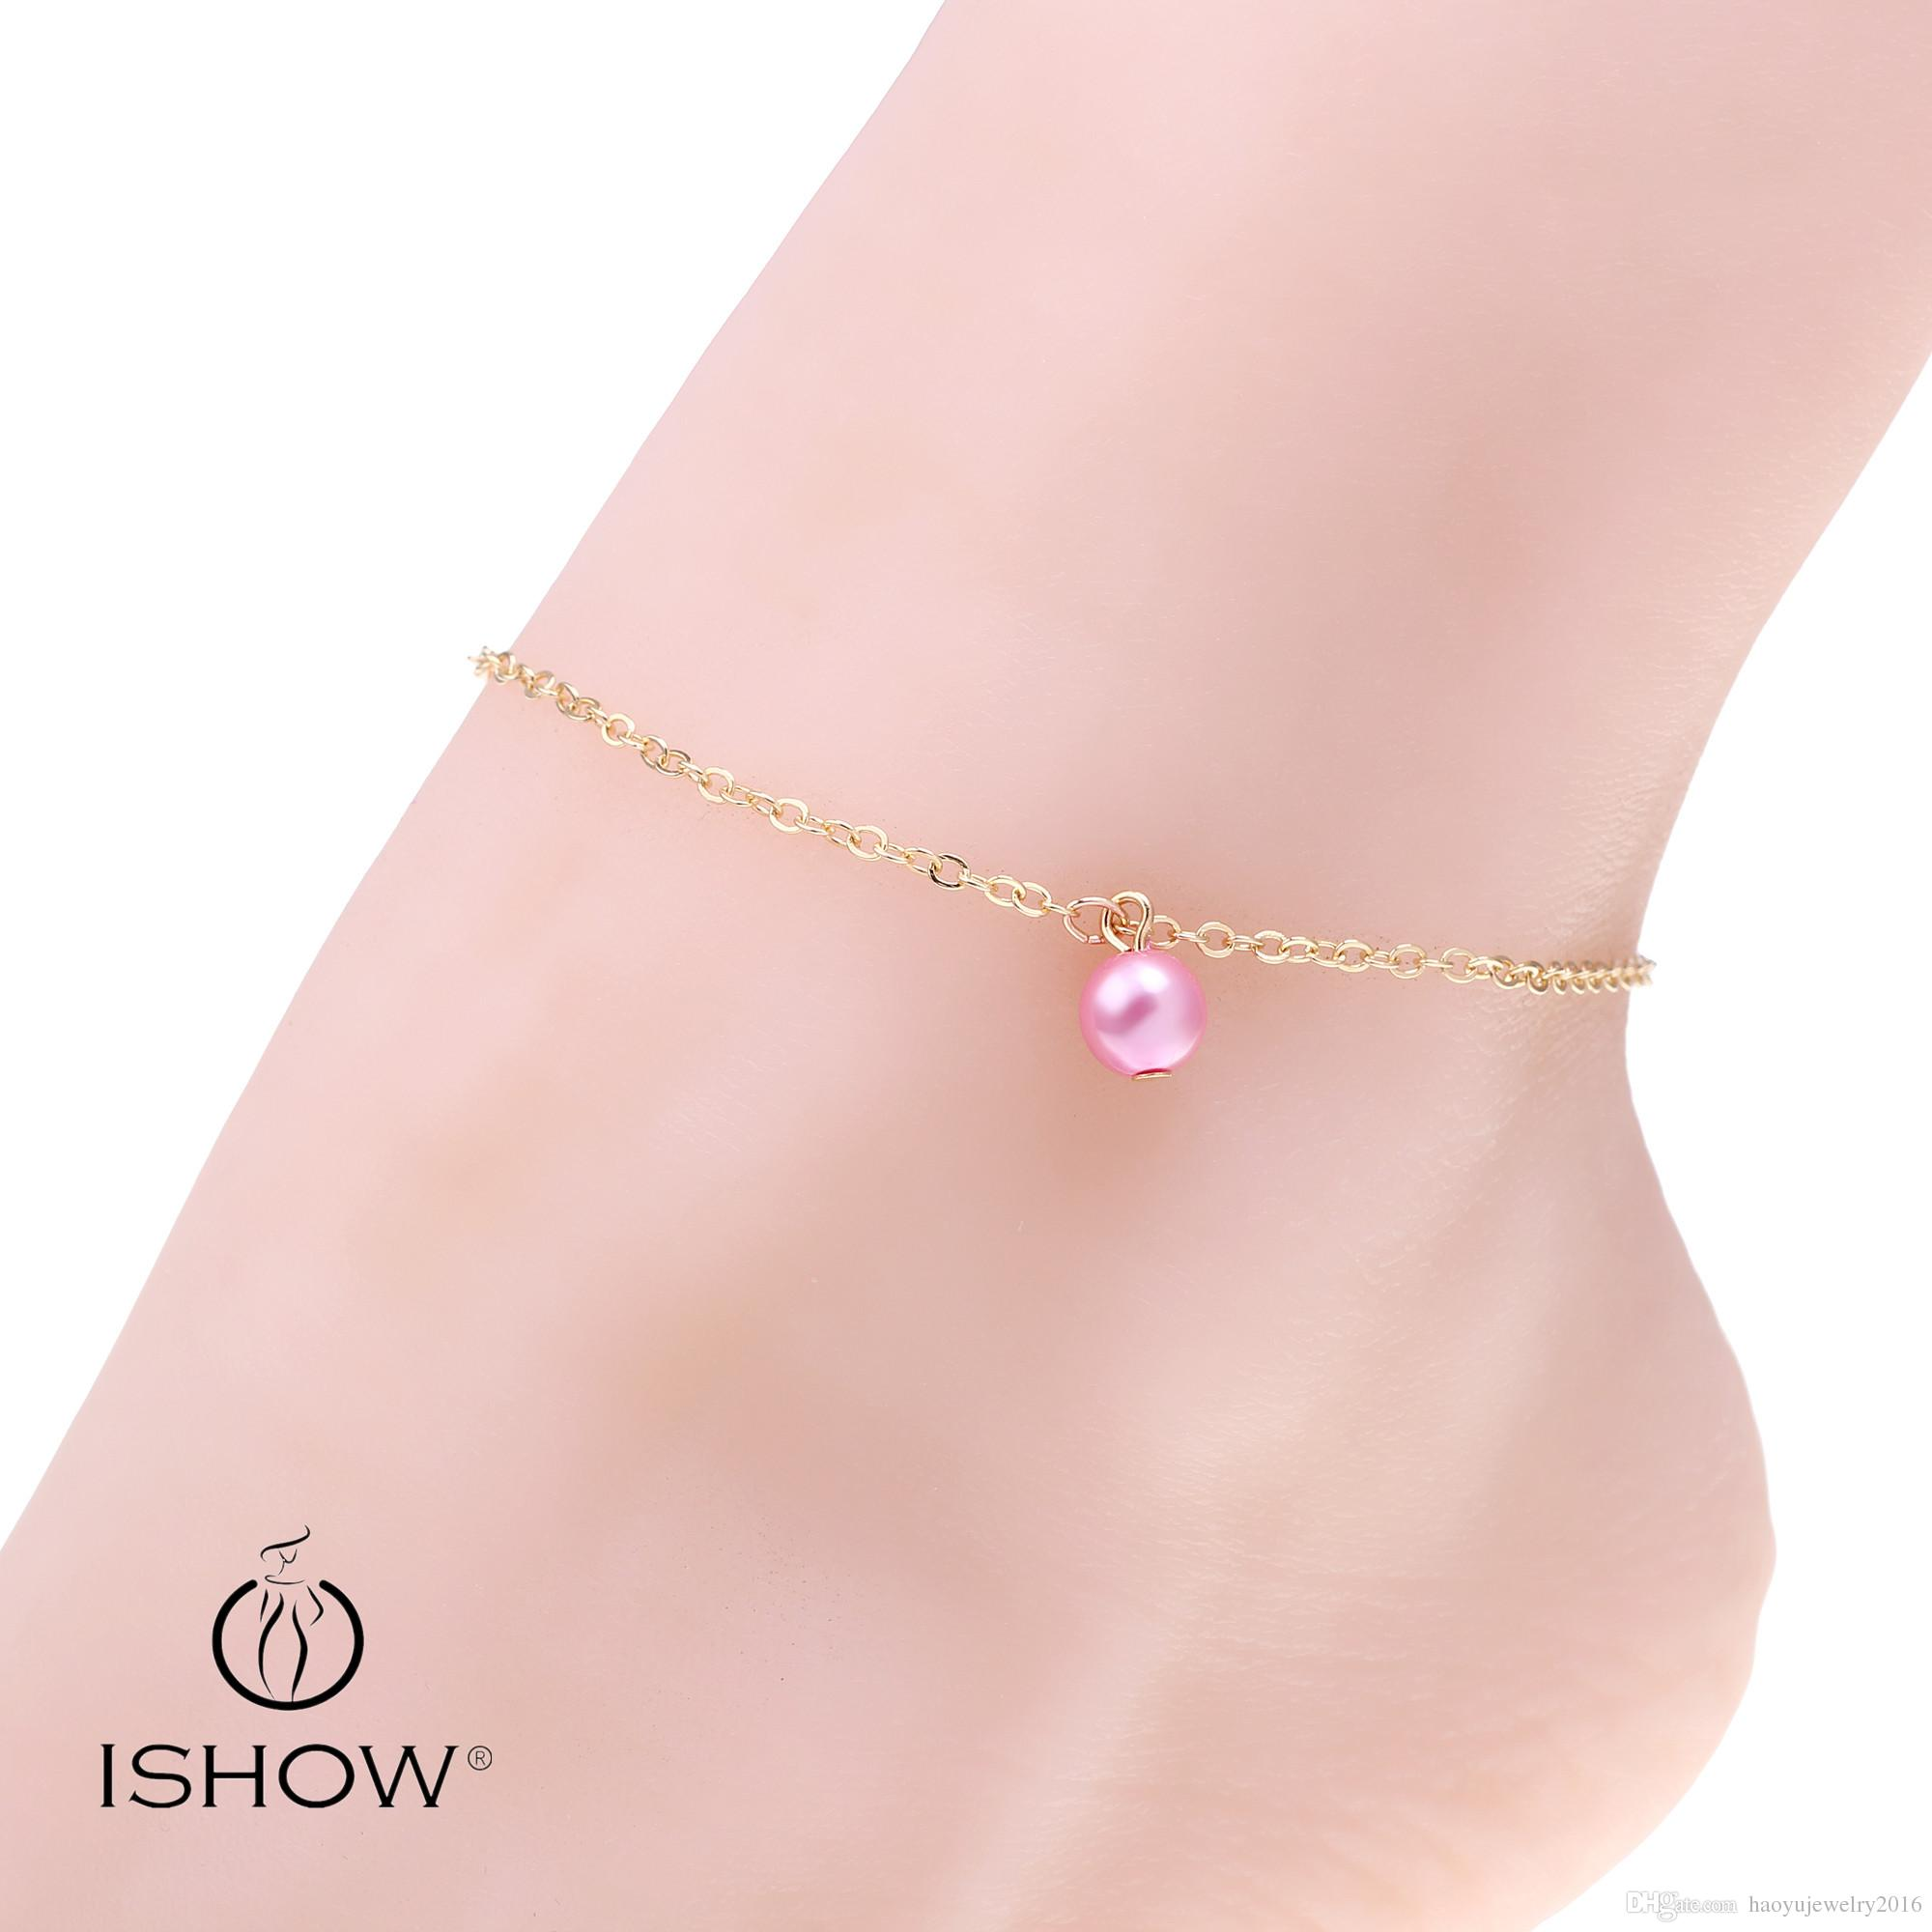 il jewelry p blue anklets gift rose something fullxfull gold wedding women bracelet topaz womens bride anklet for ankle